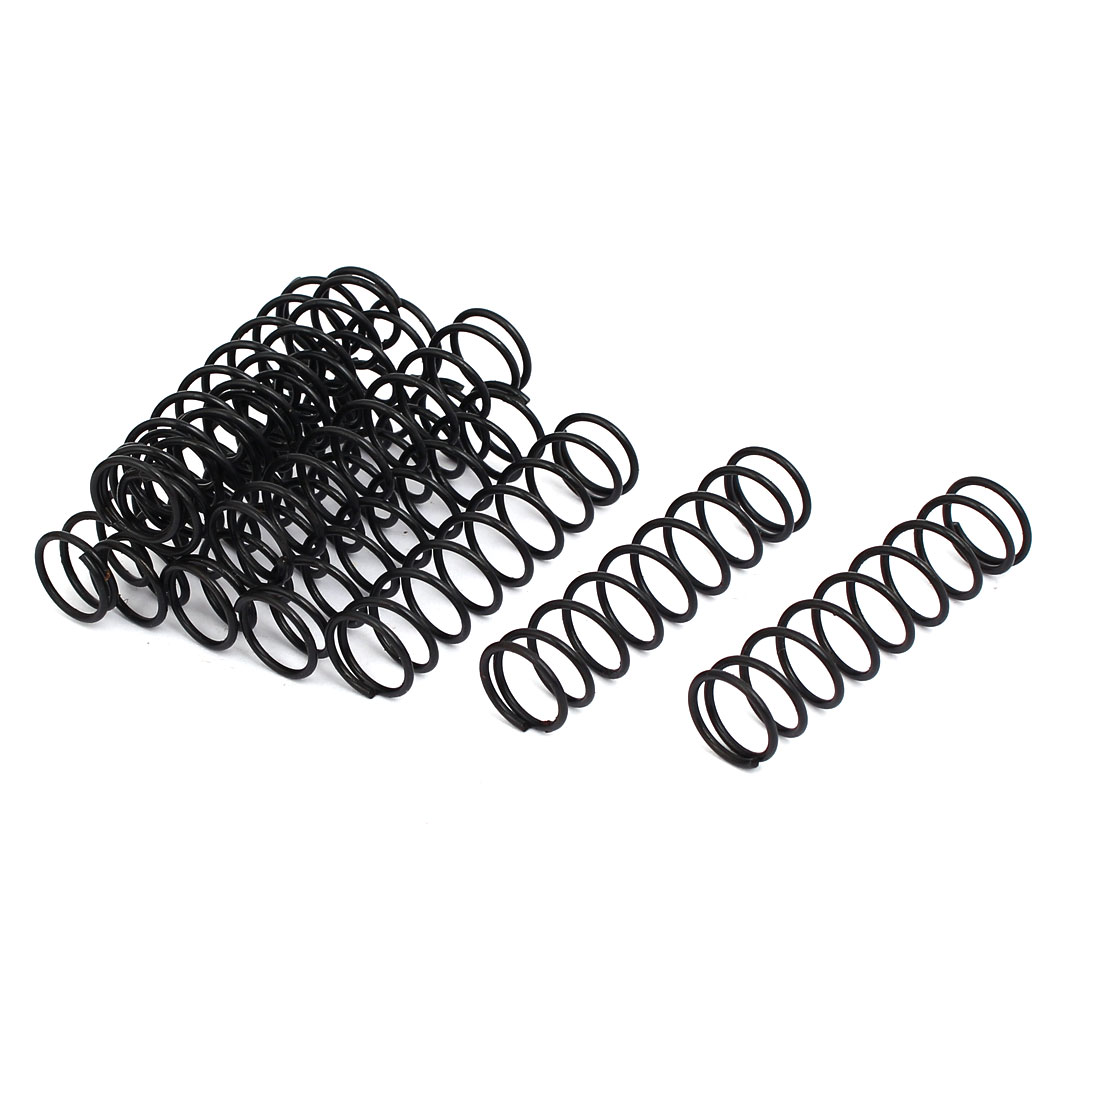 1.2mm Wire Dia 13mm Outer Diameter 50mm Long Compression Springs Black 10pcs